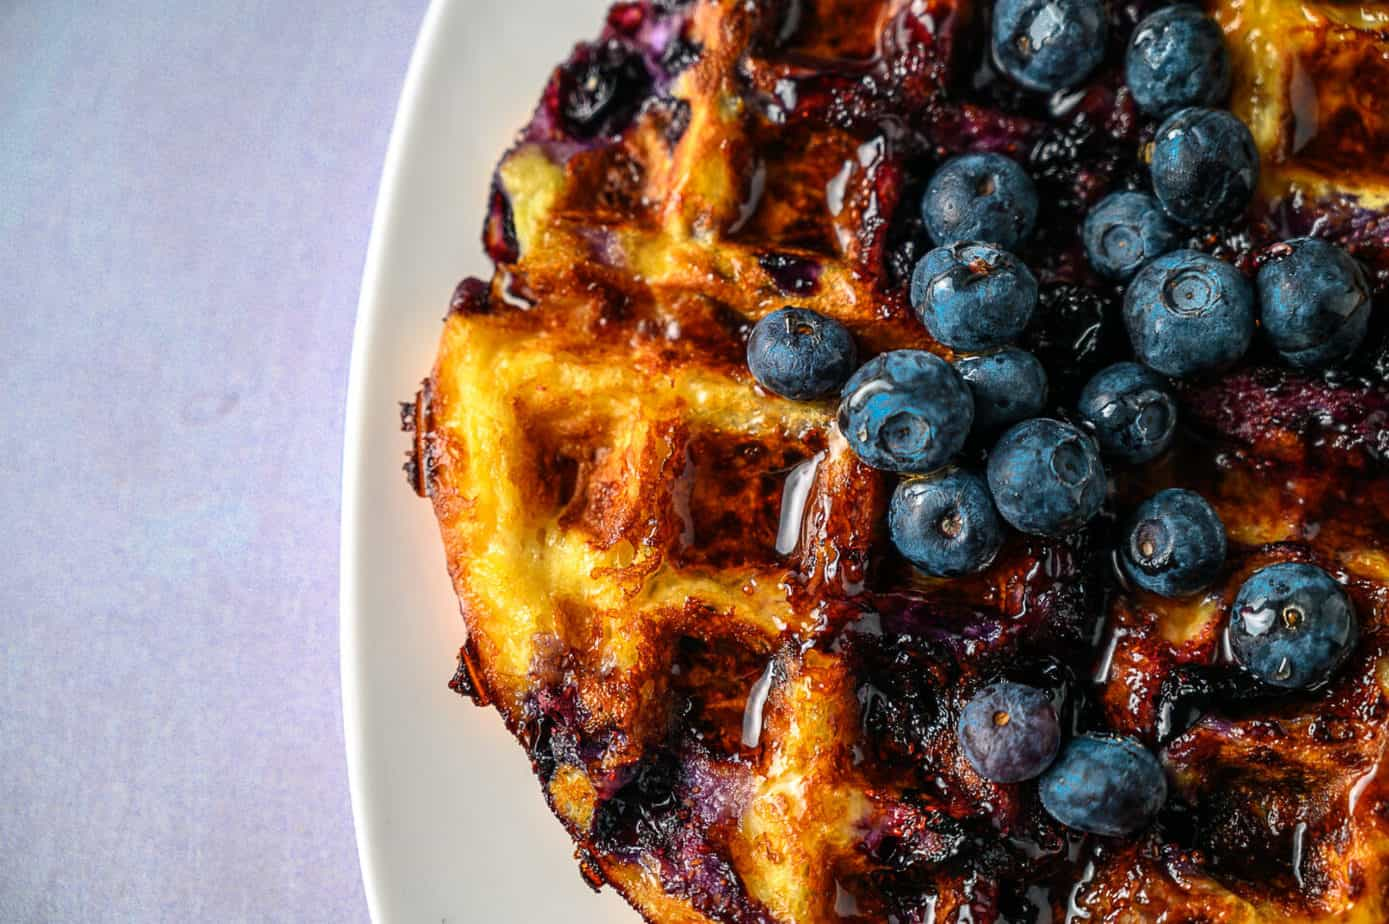 Blueberry chaffle on a plate.